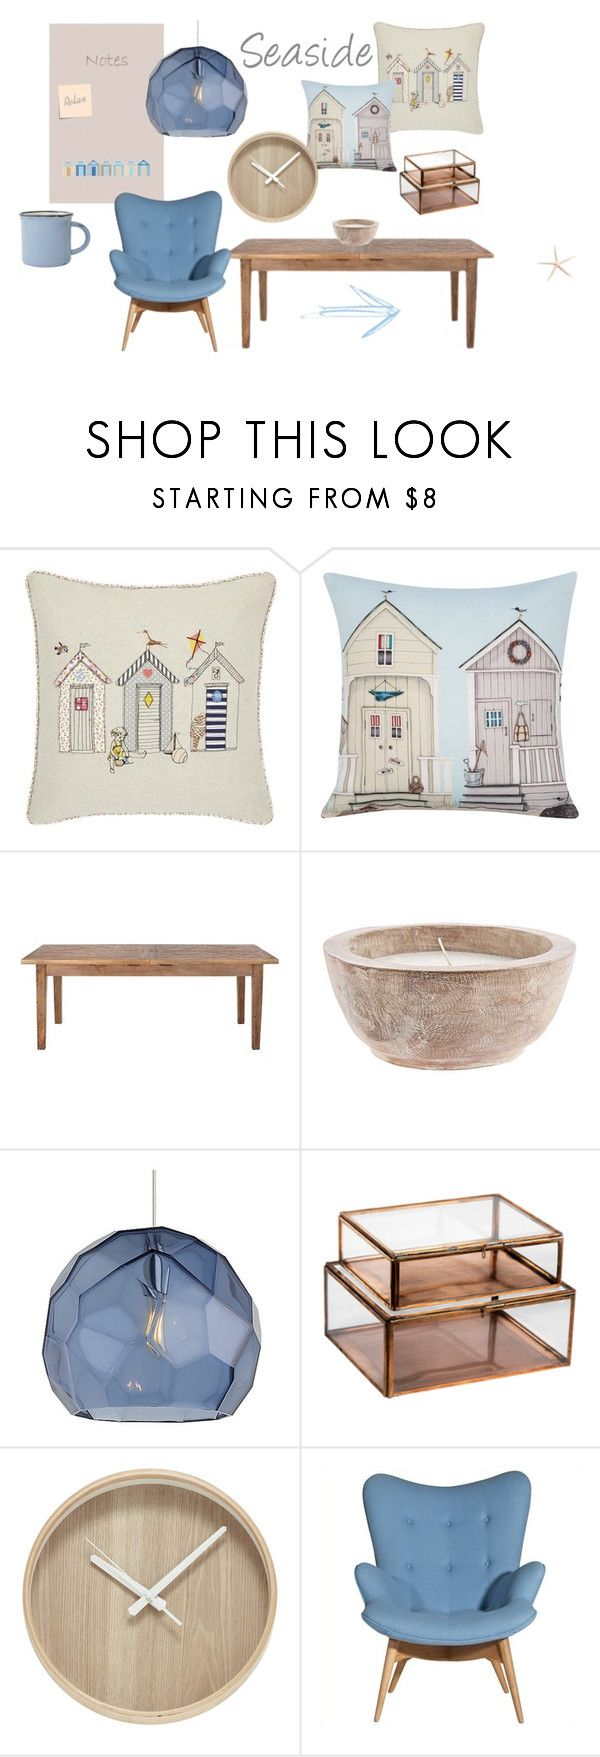 """Beach Side Home"" by magneticnoticeboardco on Polyvore featuring interior, interiors, interior design, home, home decor, interior decorating, Home Decorators Collection, Tech Lighting, NKUKU and canvas"